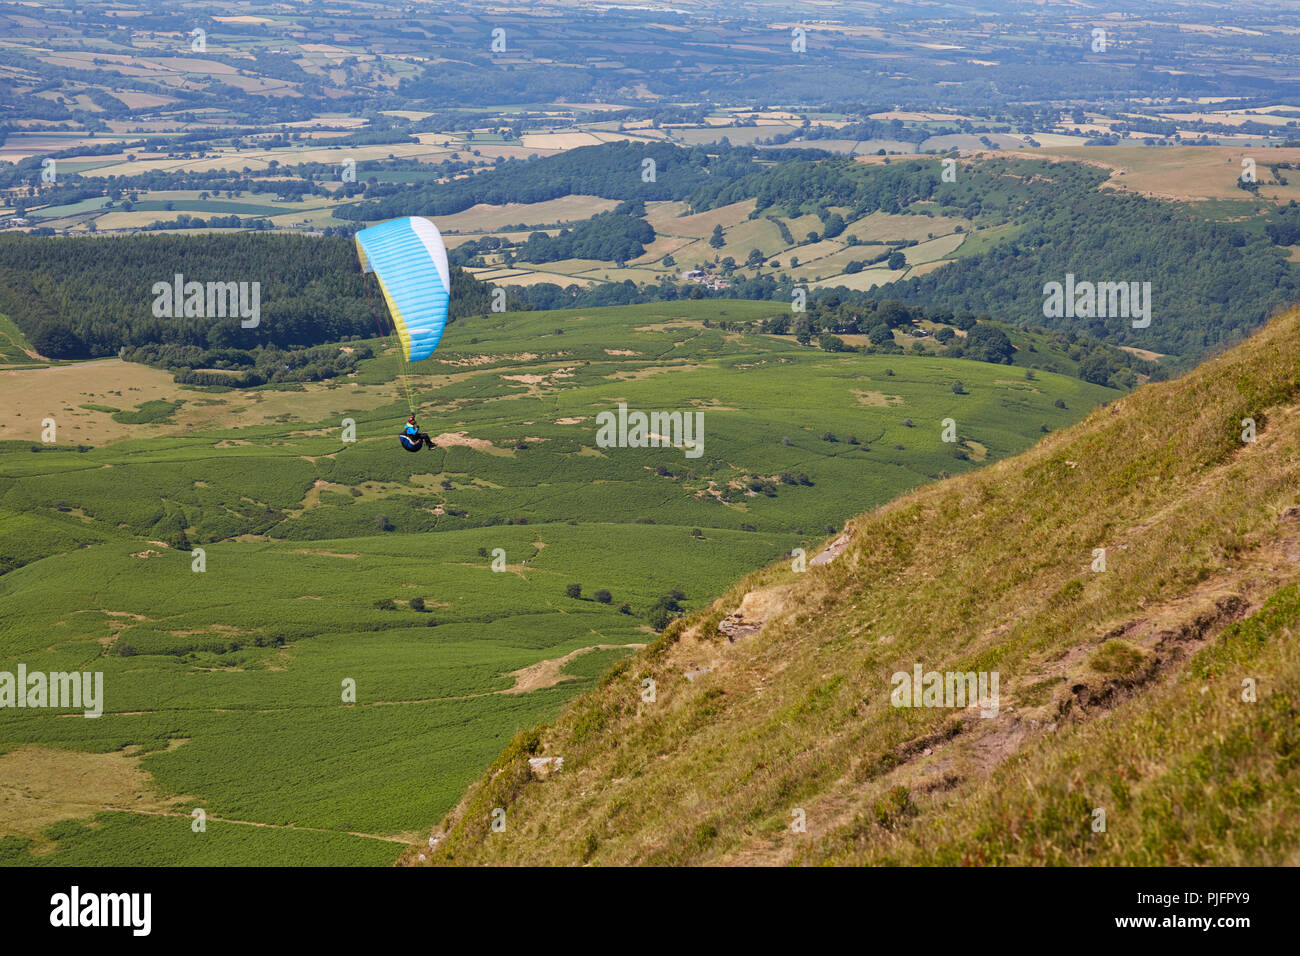 A lone paraglider flying high up in the sky above green fields in Wales UK on a sunny day - Stock Image